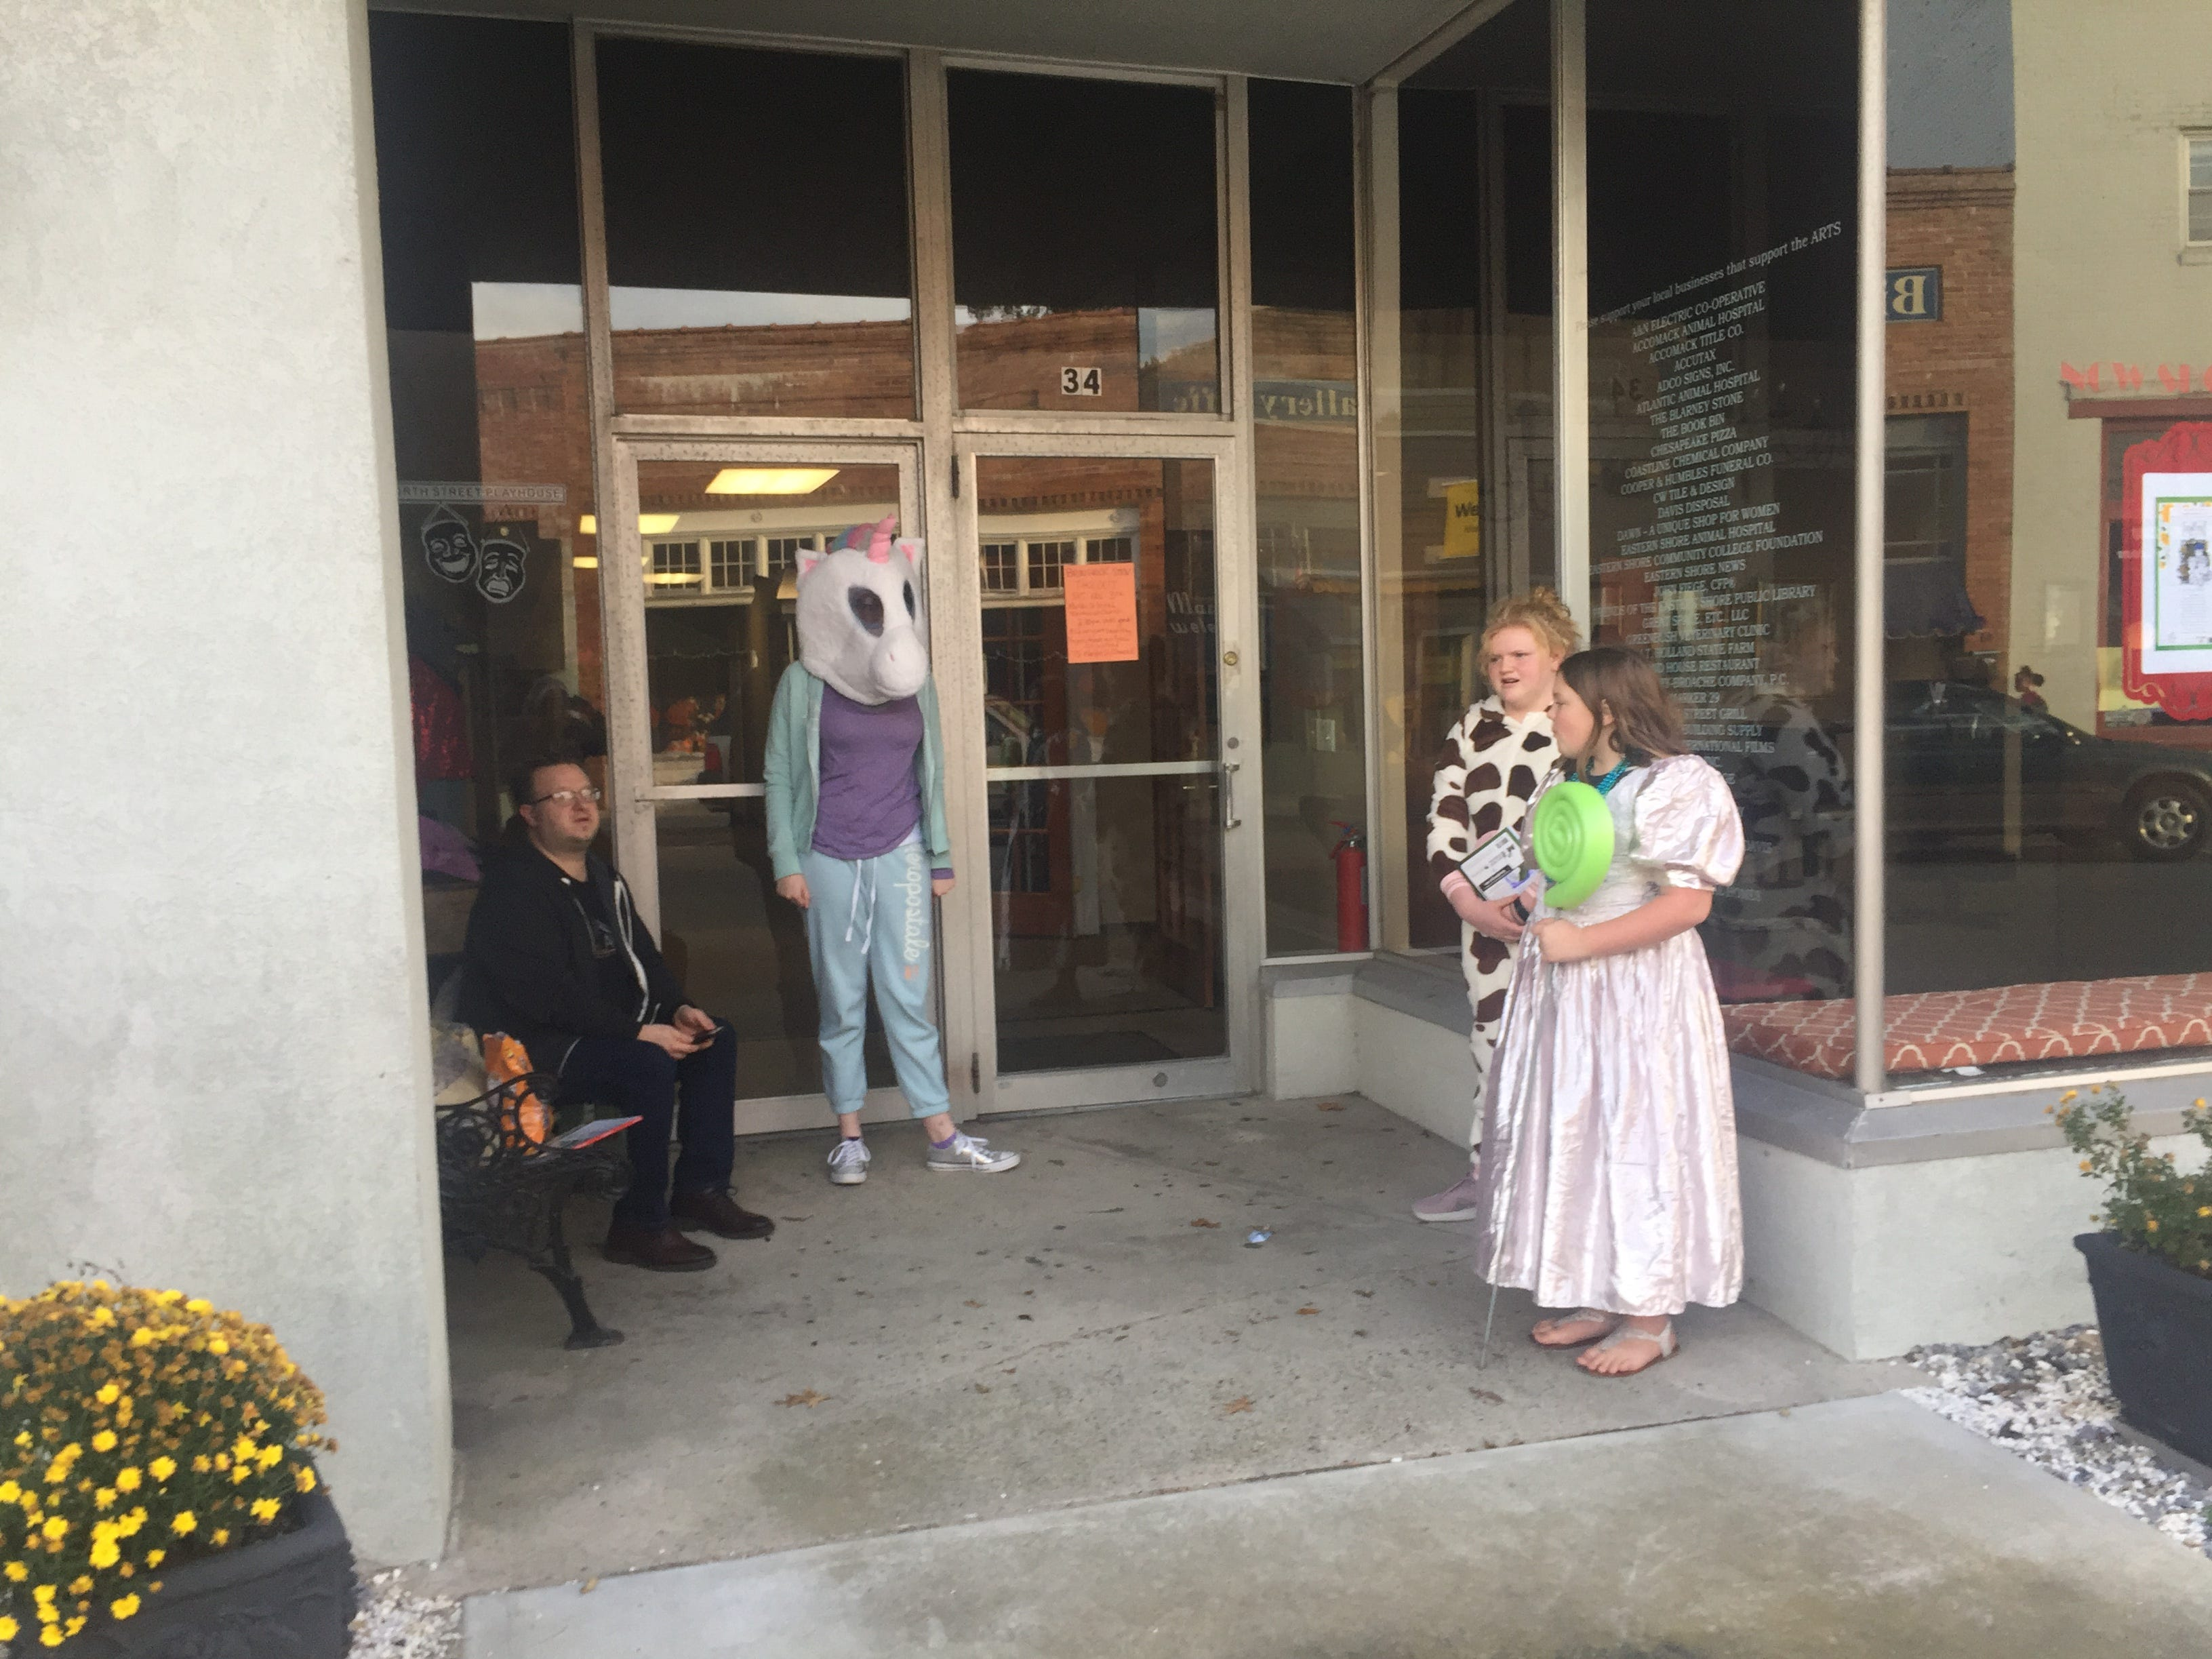 North Street Playhouse volunteers prepare to hand out candy to Halloween trick-or-treaters in Onancock, Virginia on Wednesday, Oct. 31, 2018.